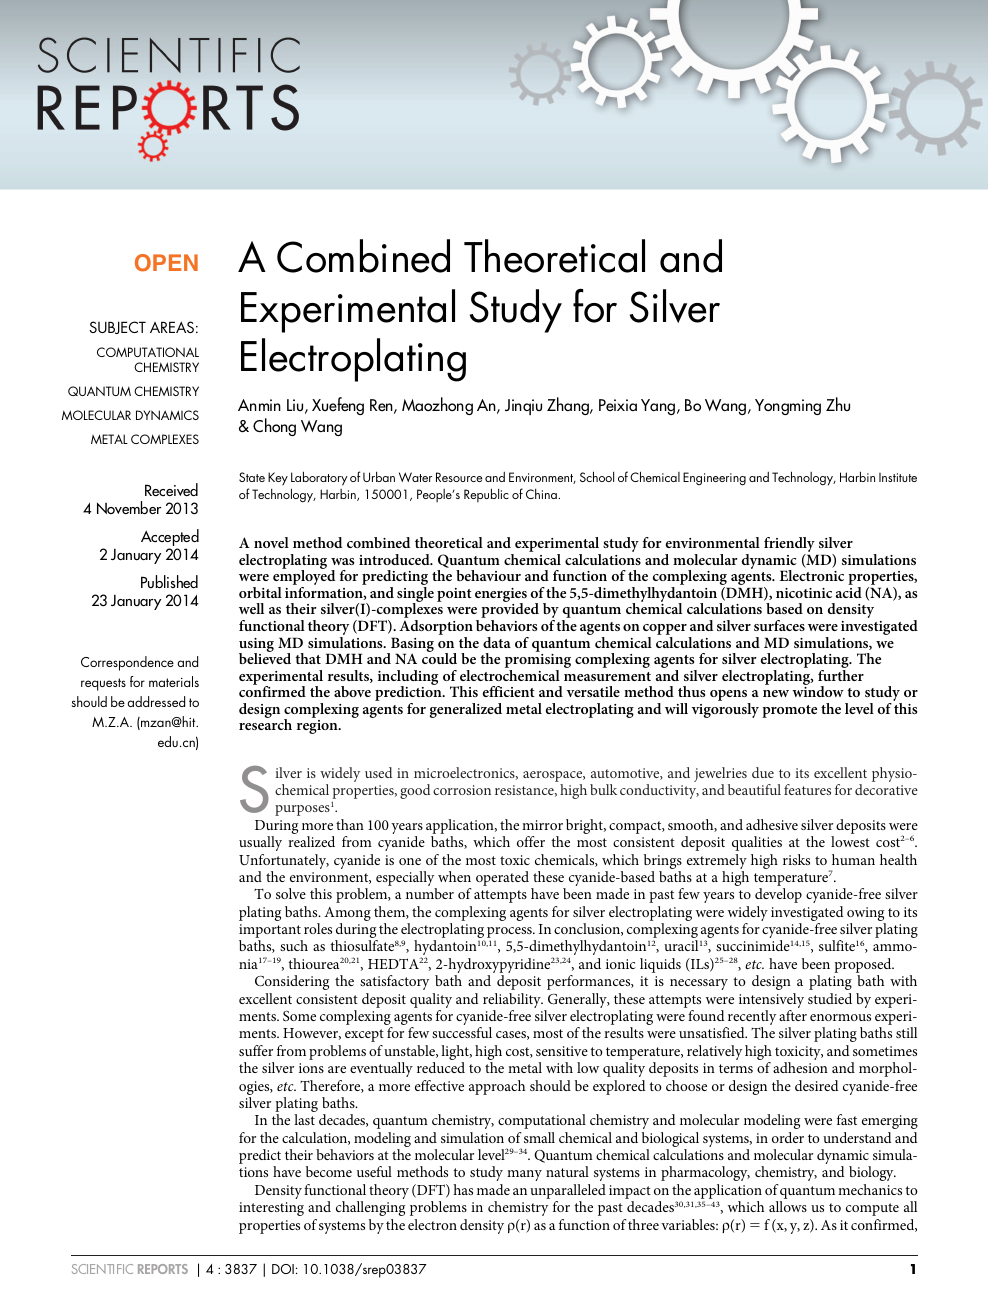 A Combined Theoretical and Experimental Study for Silver